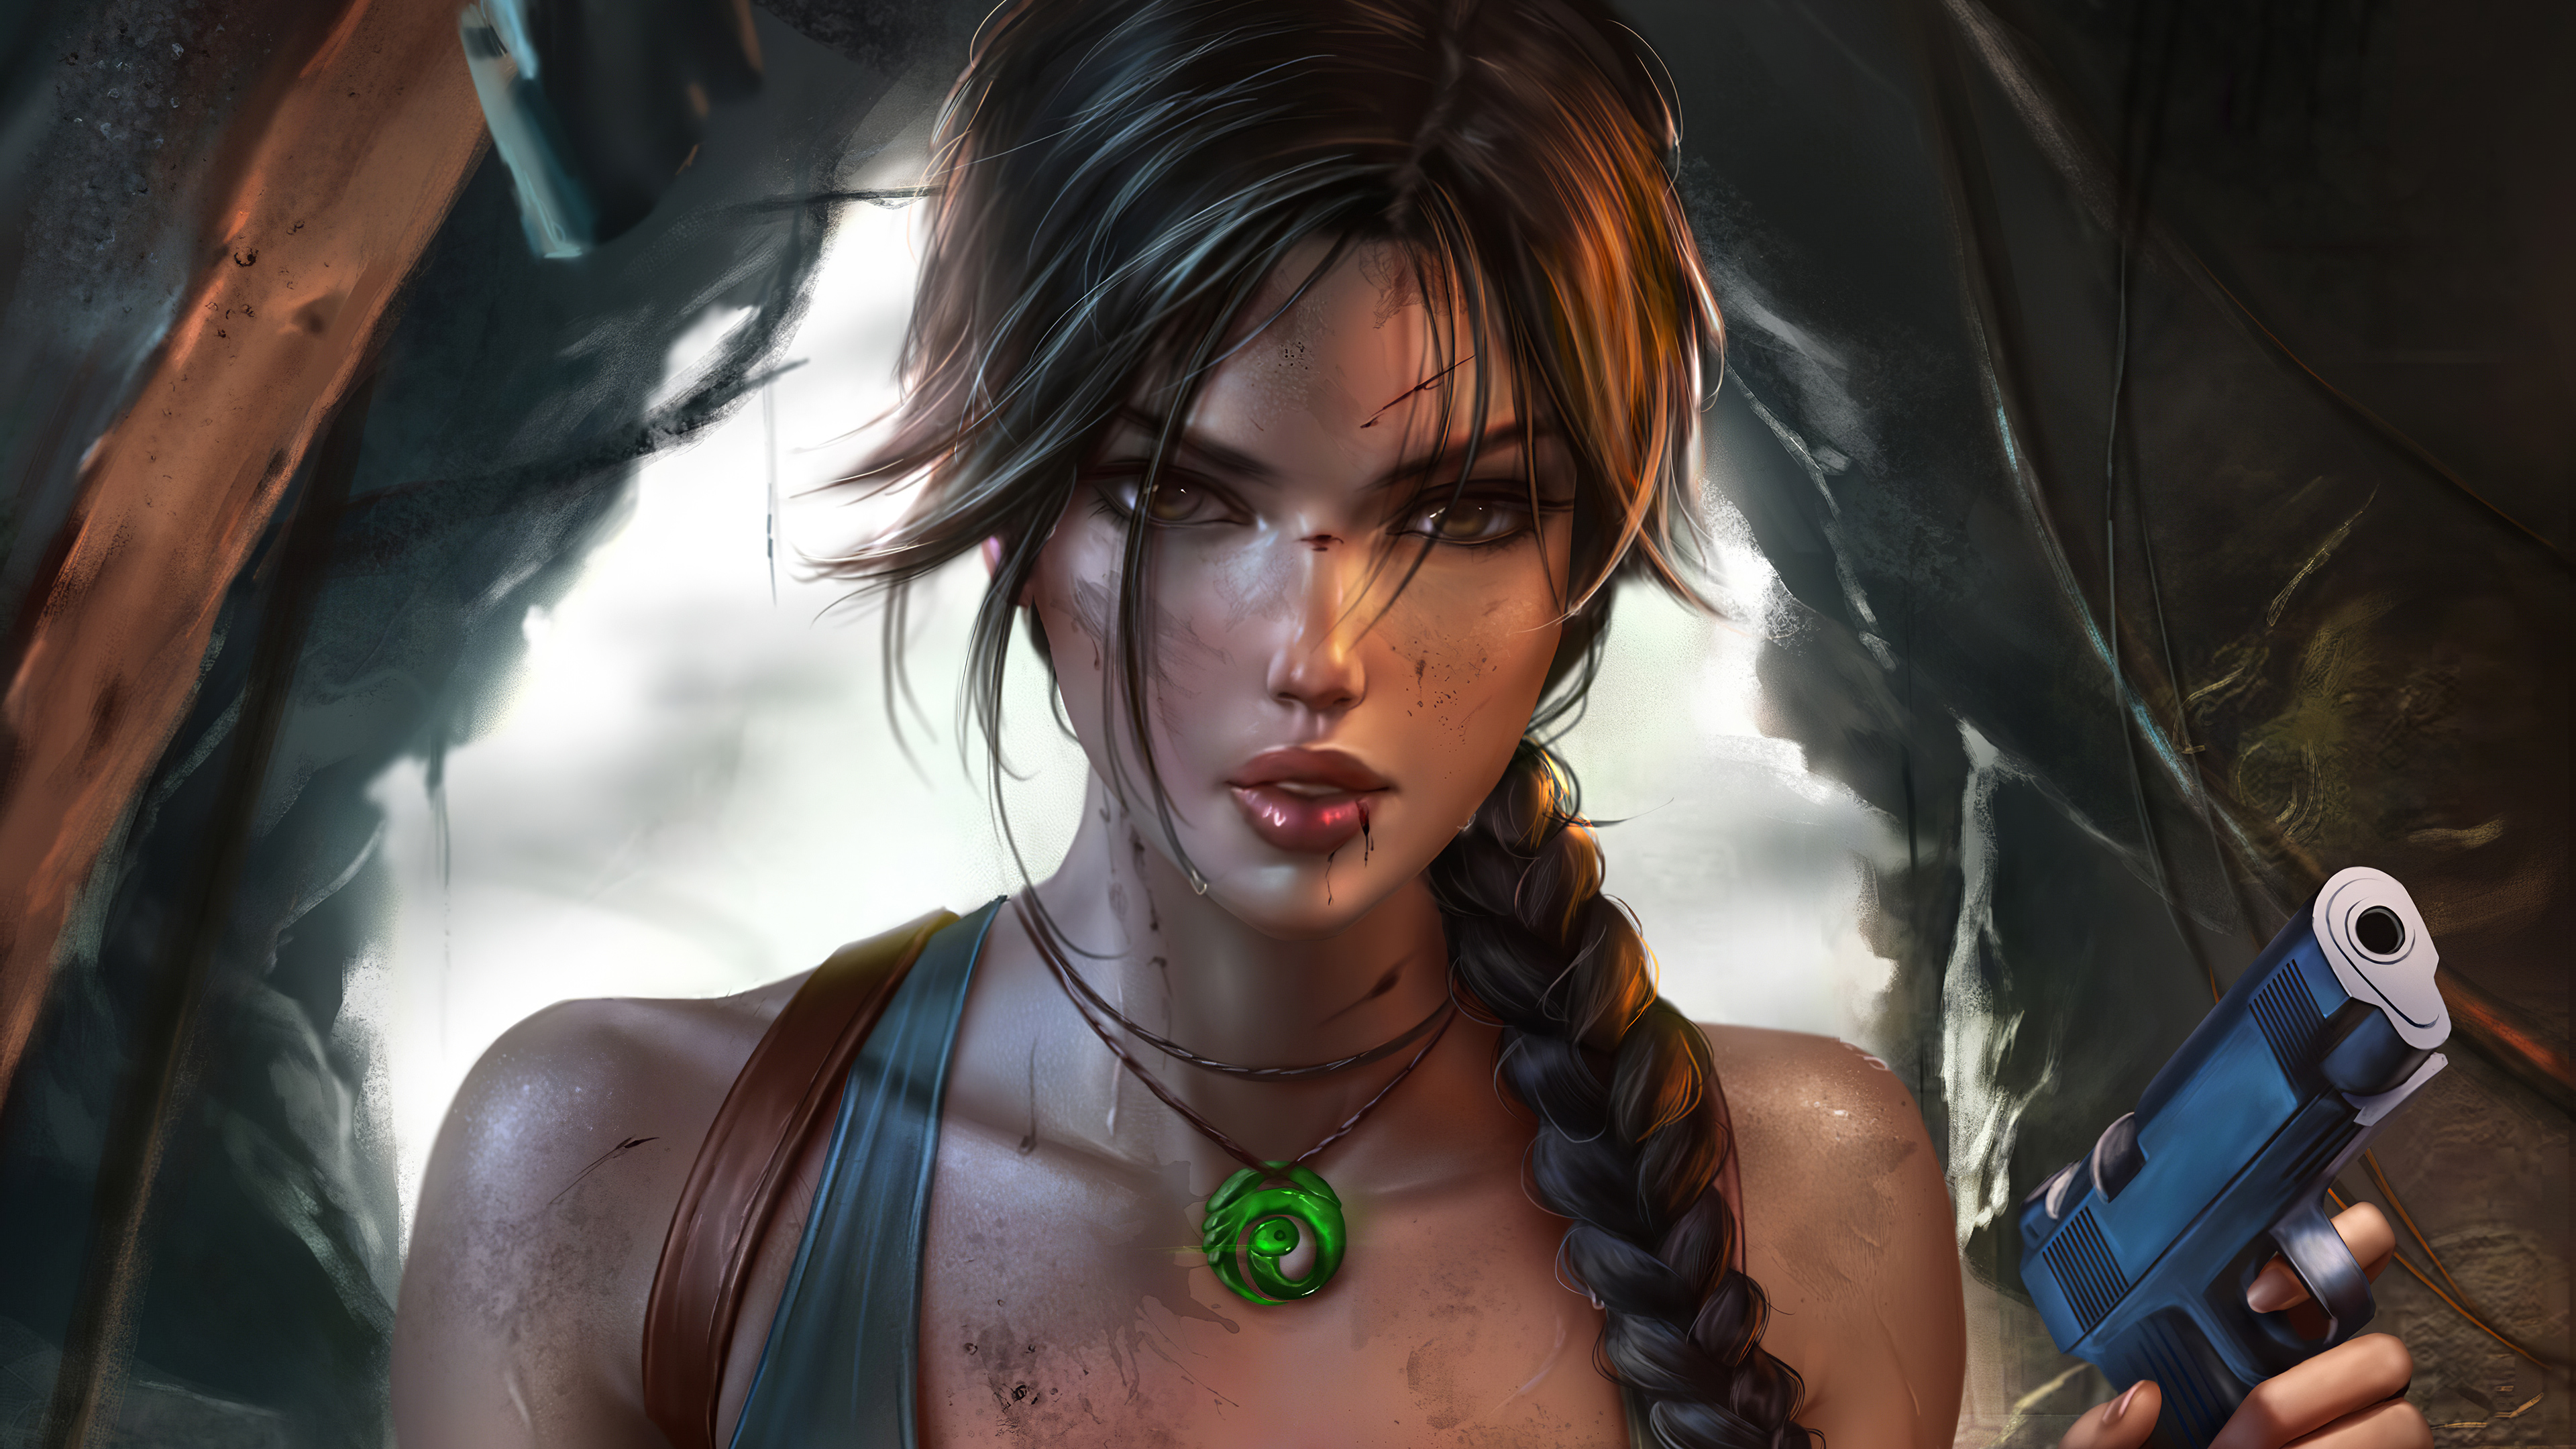 lara croft tomb raider fantasy 1572369938 - Lara Croft Tomb Raider Fantasy - tomb raider wallpapers, lara croft wallpapers, hd-wallpapers, games wallpapers, digital art wallpapers, artwork wallpapers, artstation wallpapers, artist wallpapers, 4k-wallpapers